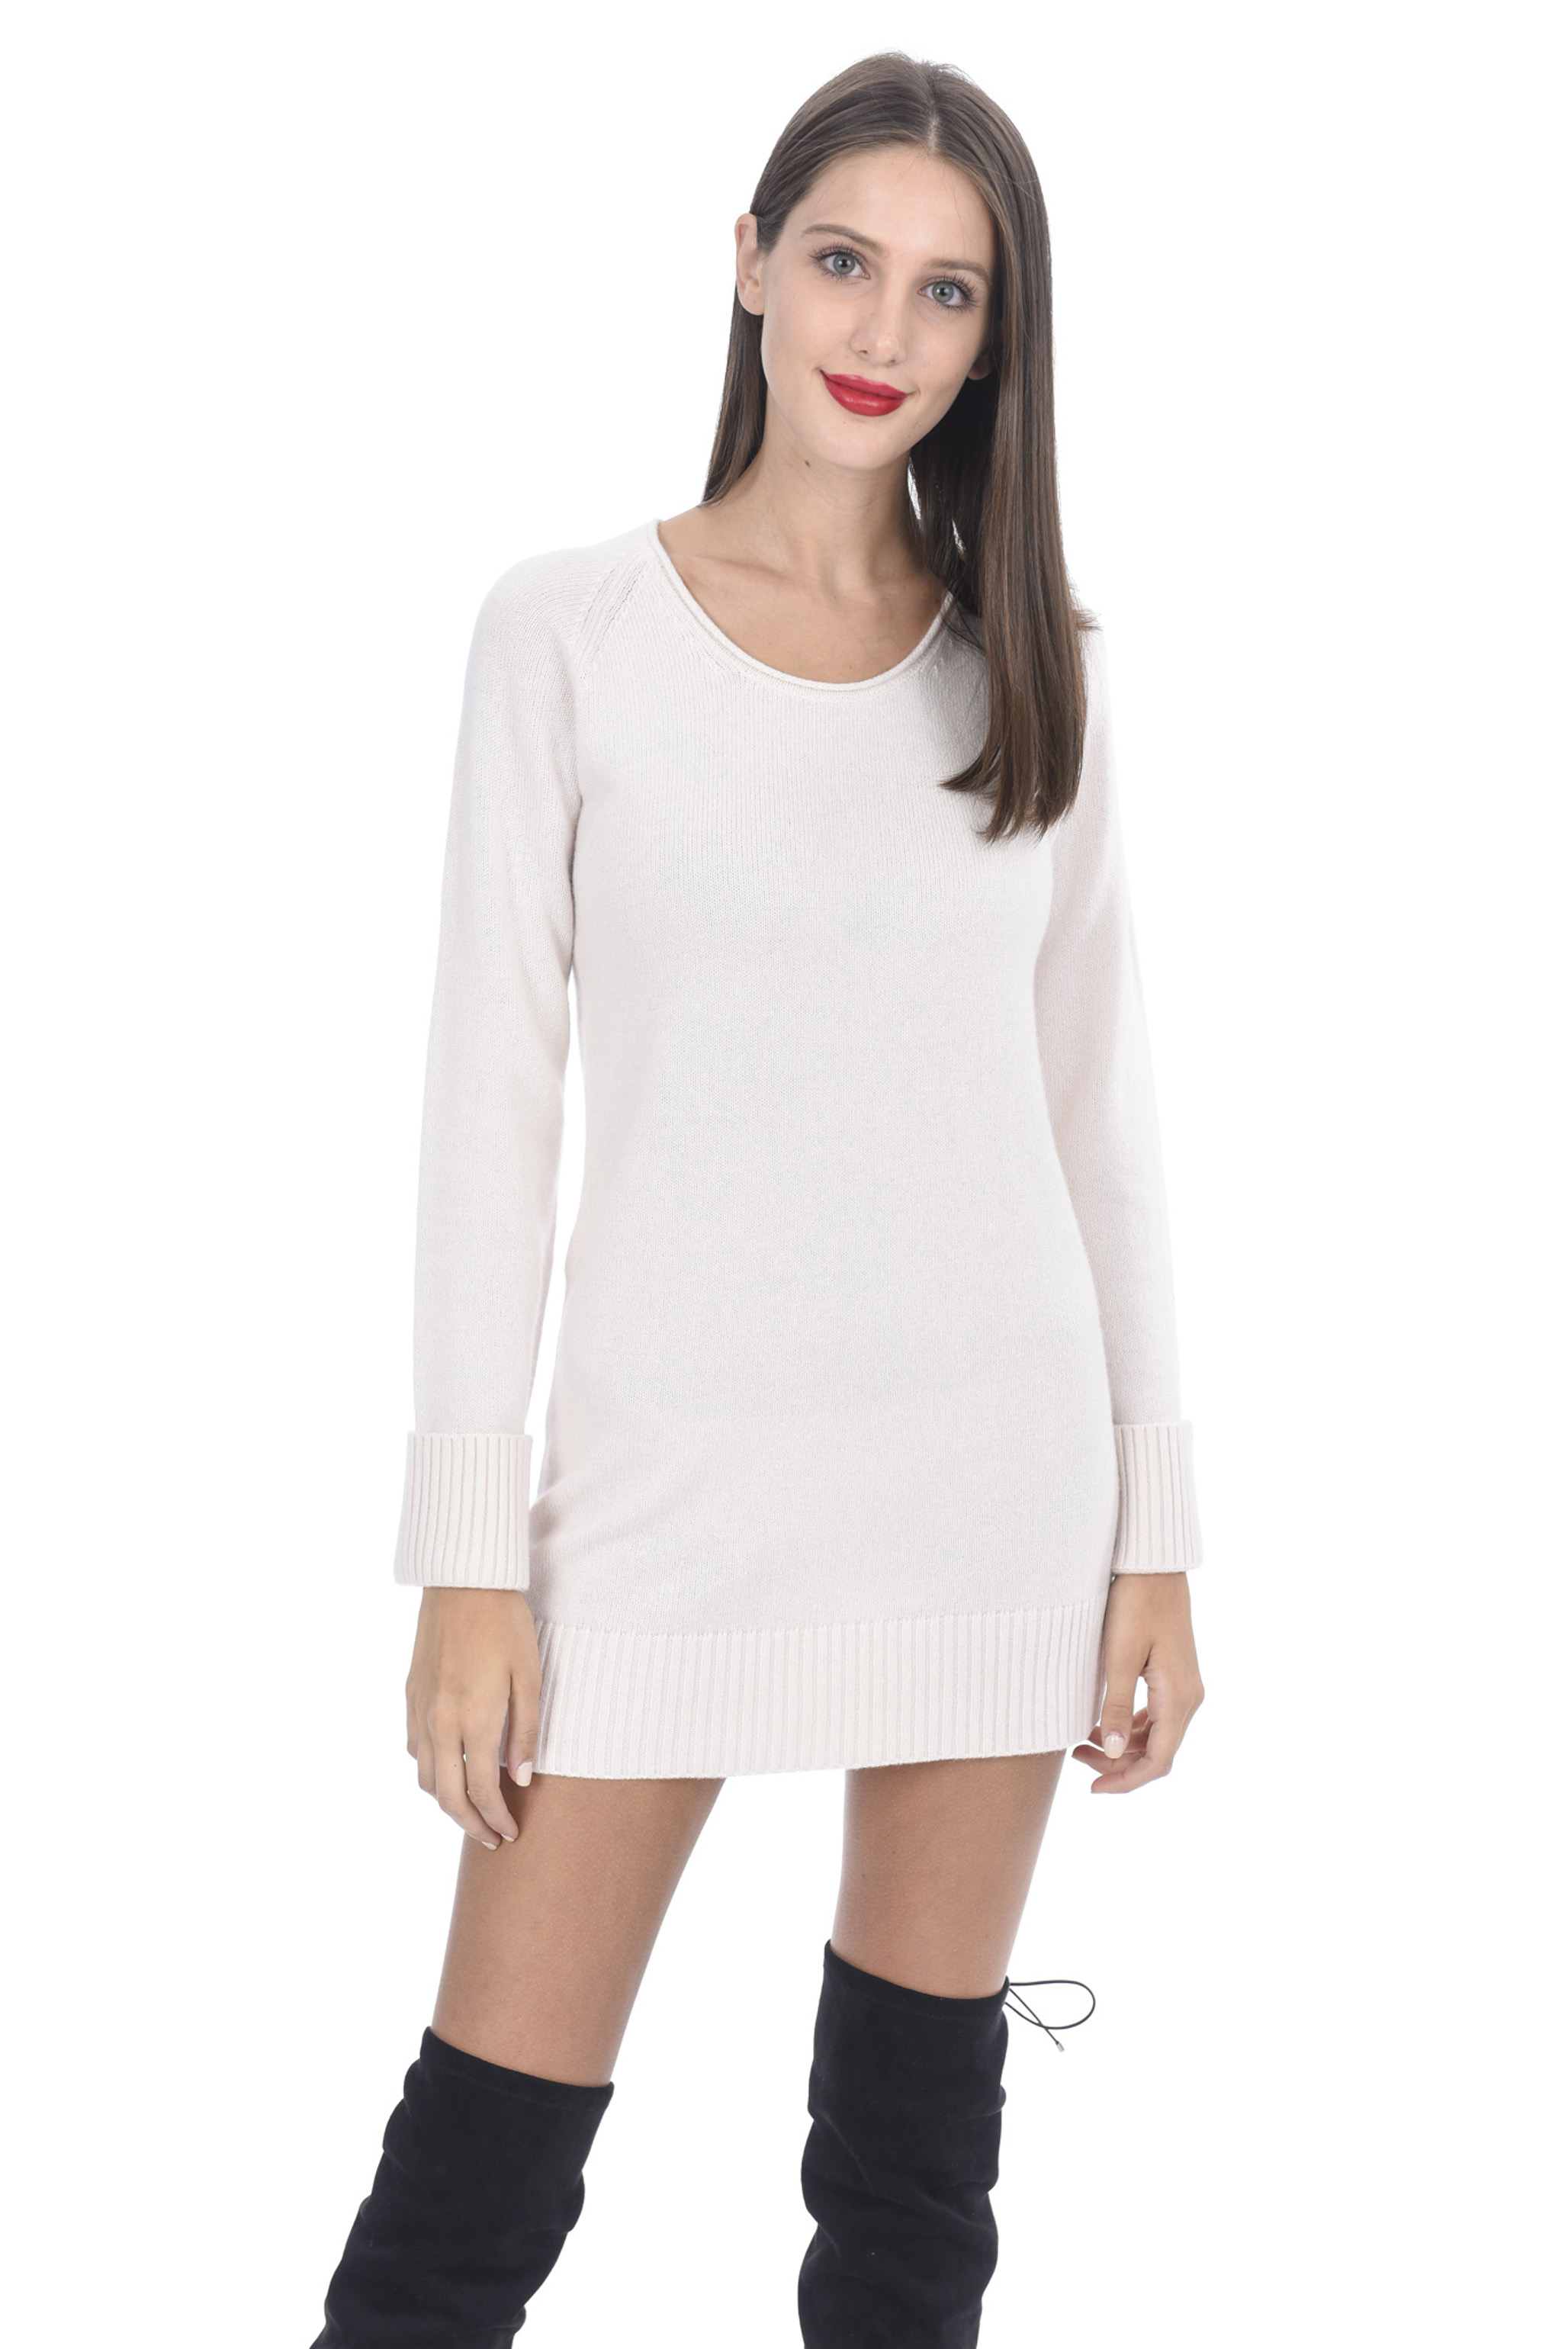 Cashmere 100 Women sweater dresses